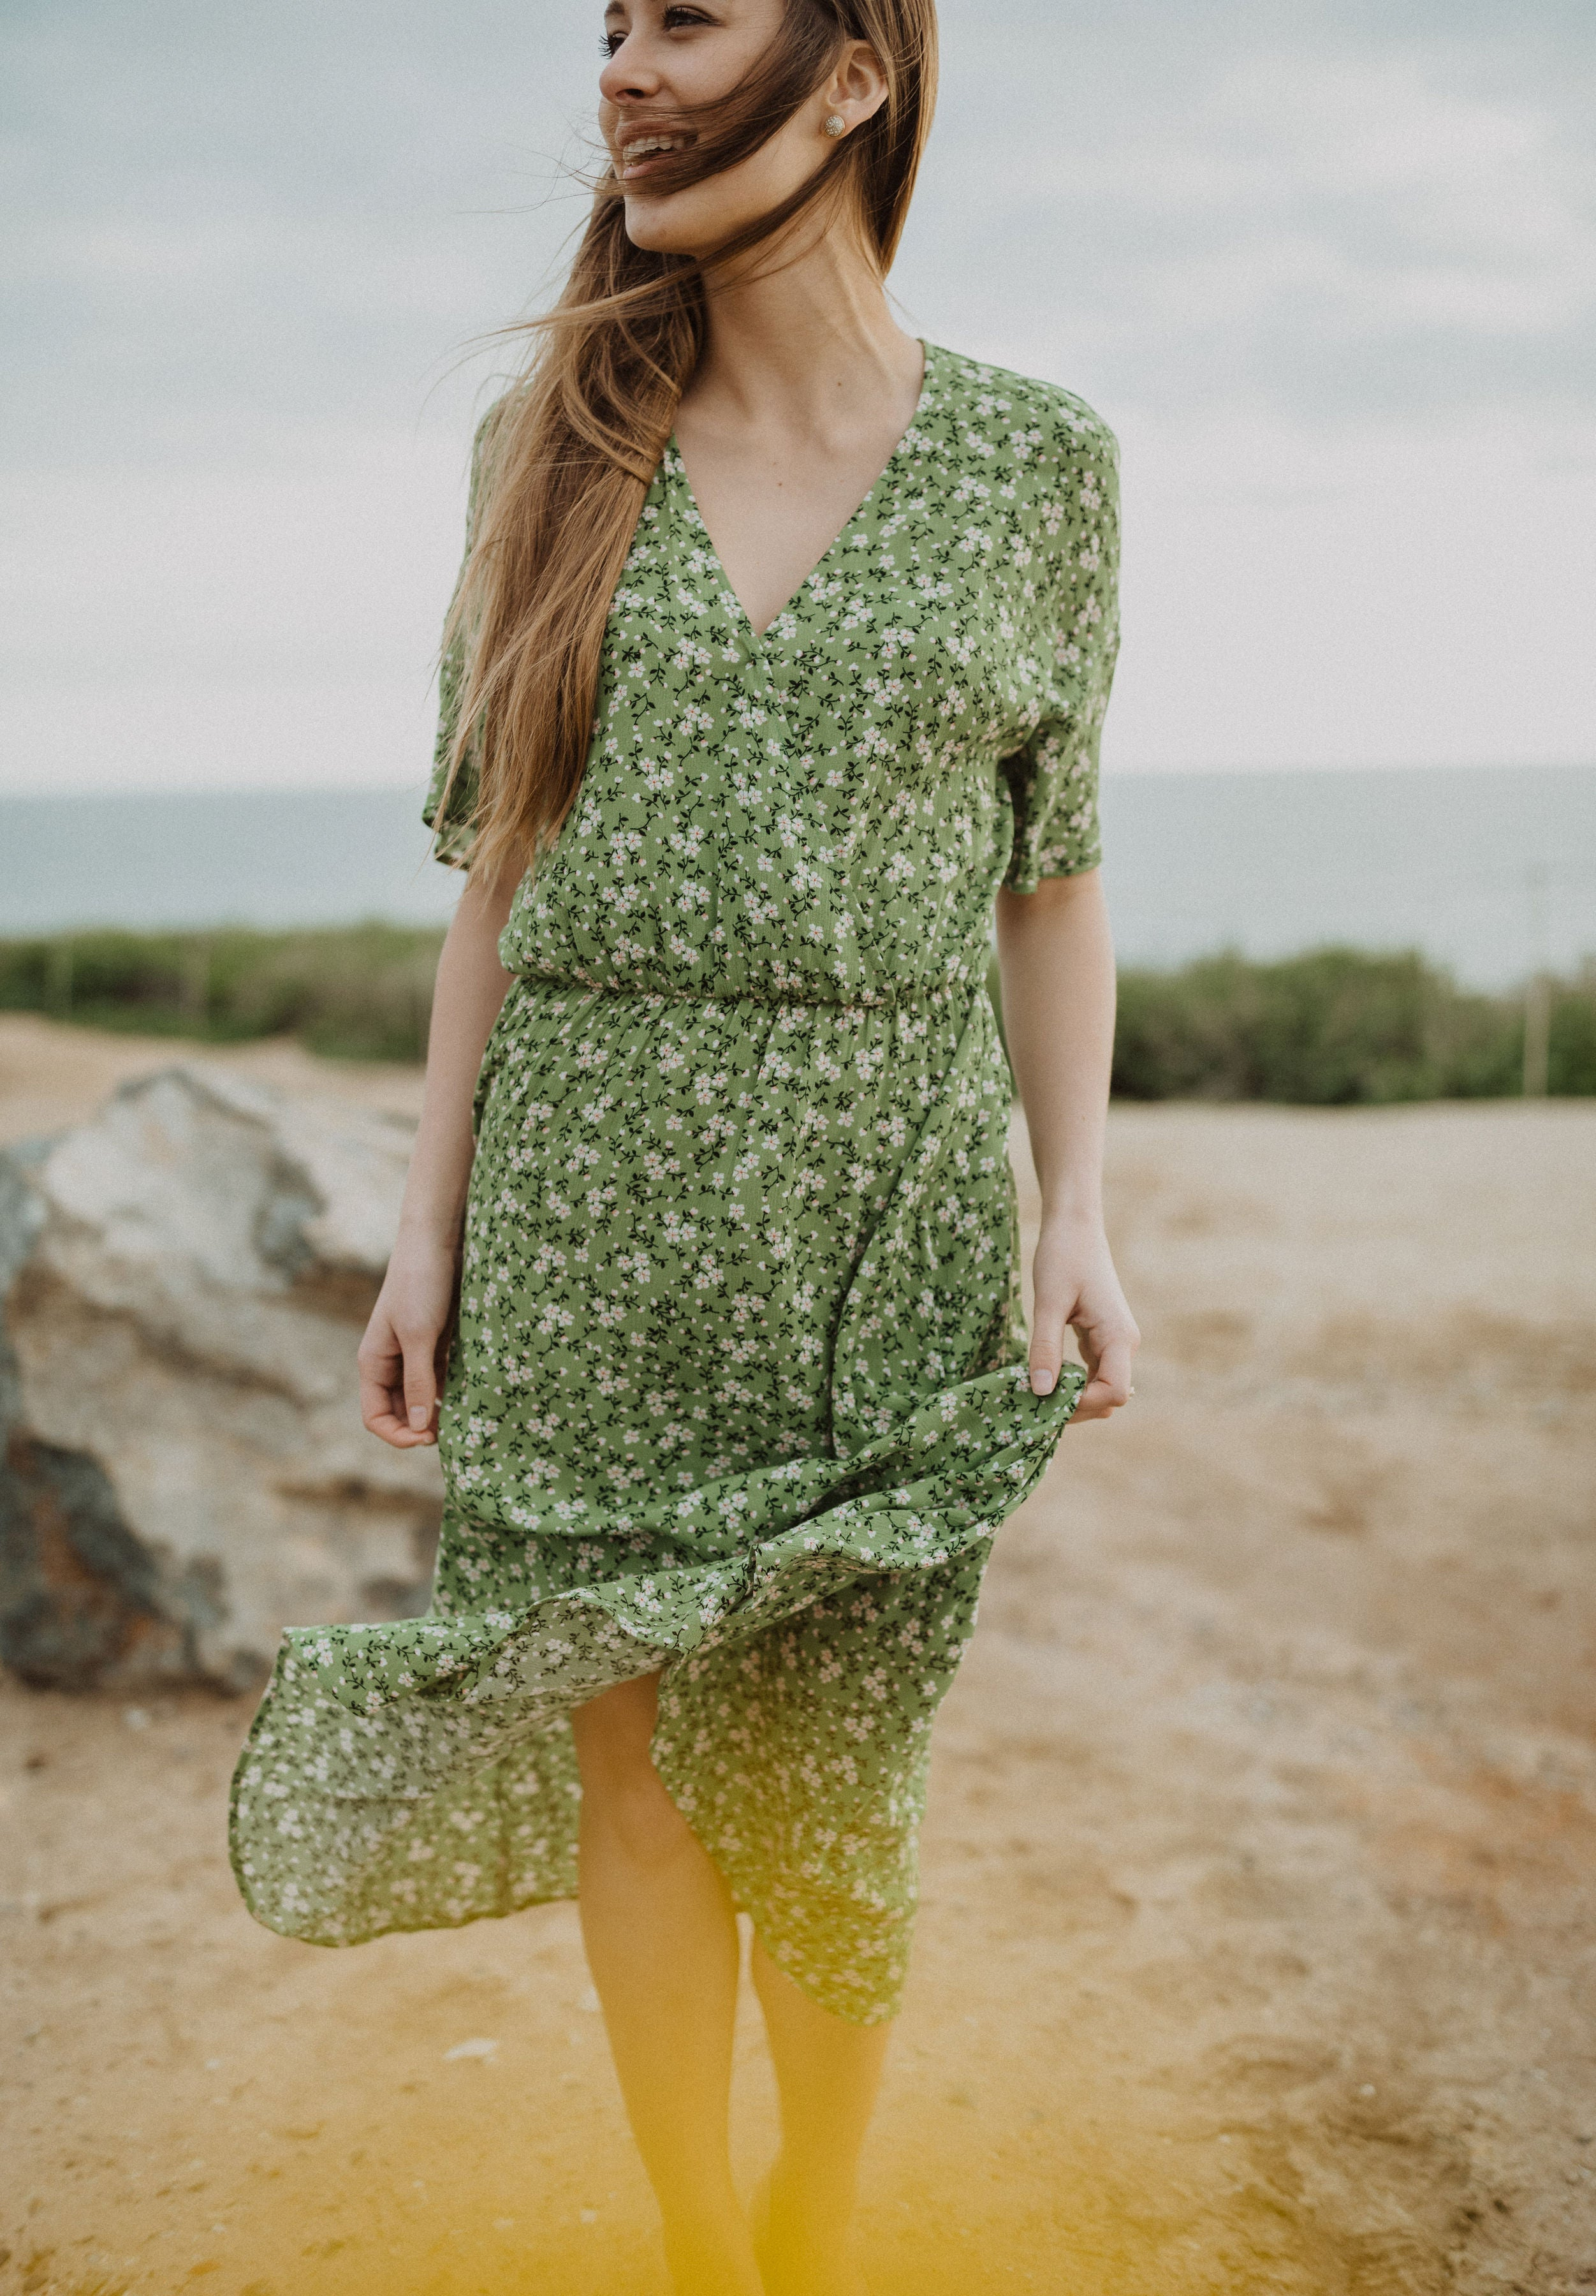 The Sable Floral Wrap Dress in Pear